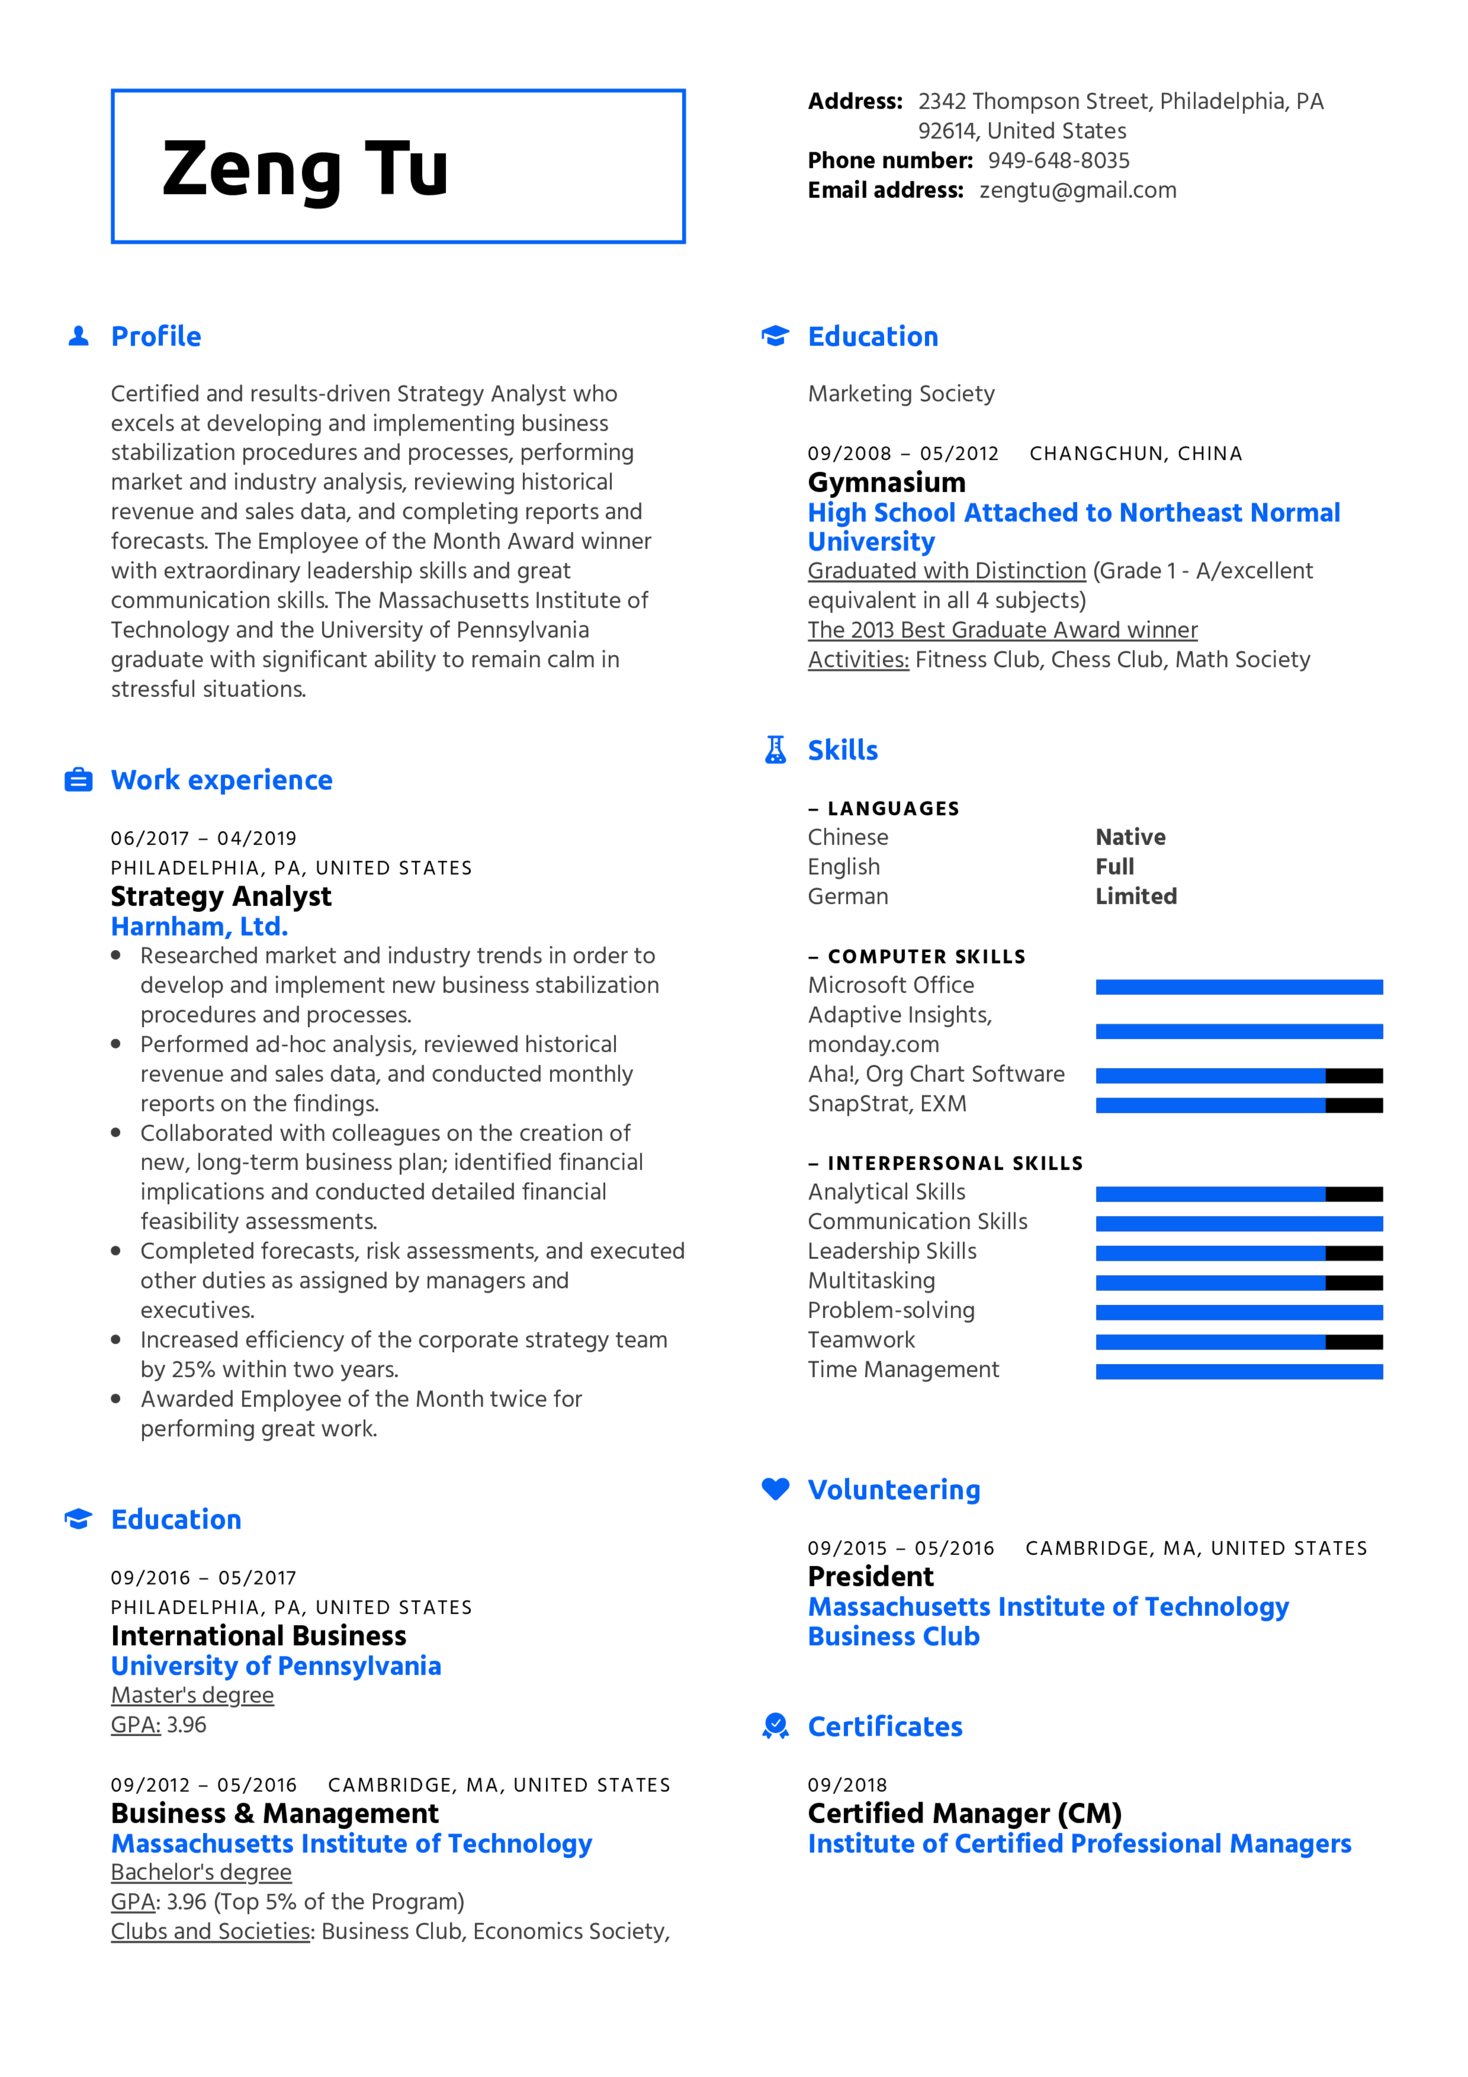 Strategy Analyst Resume Sample (parte 1)